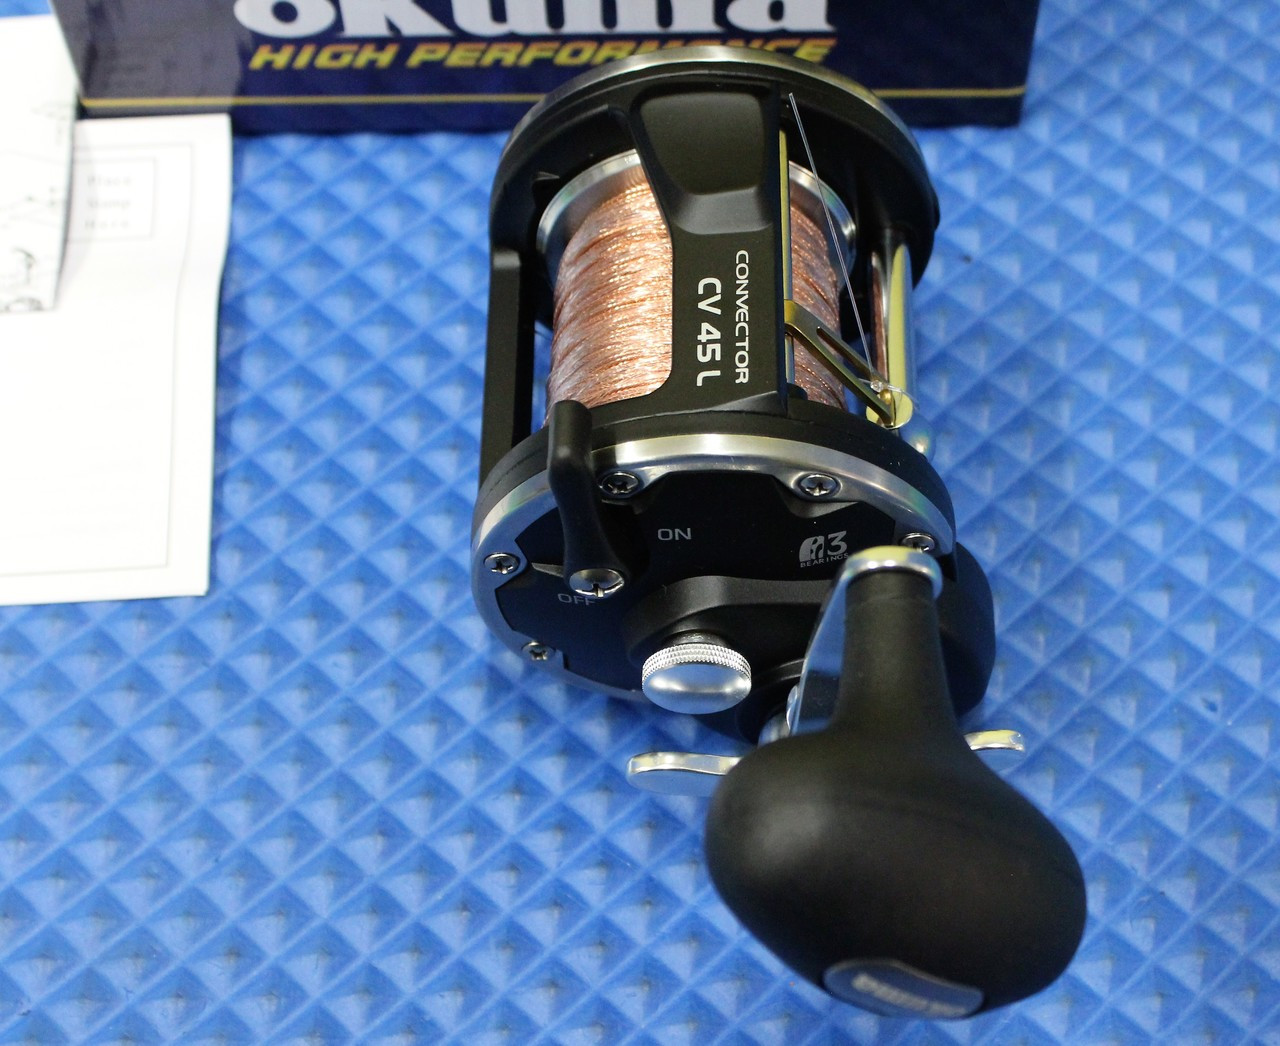 Okuma Convector Levelwind Reel CV 45L Prespooled With 30# Copper, 20# Solar Green Backing, 50 Feet 20# Leader CHOOSE YOUR COPPER LENGTH